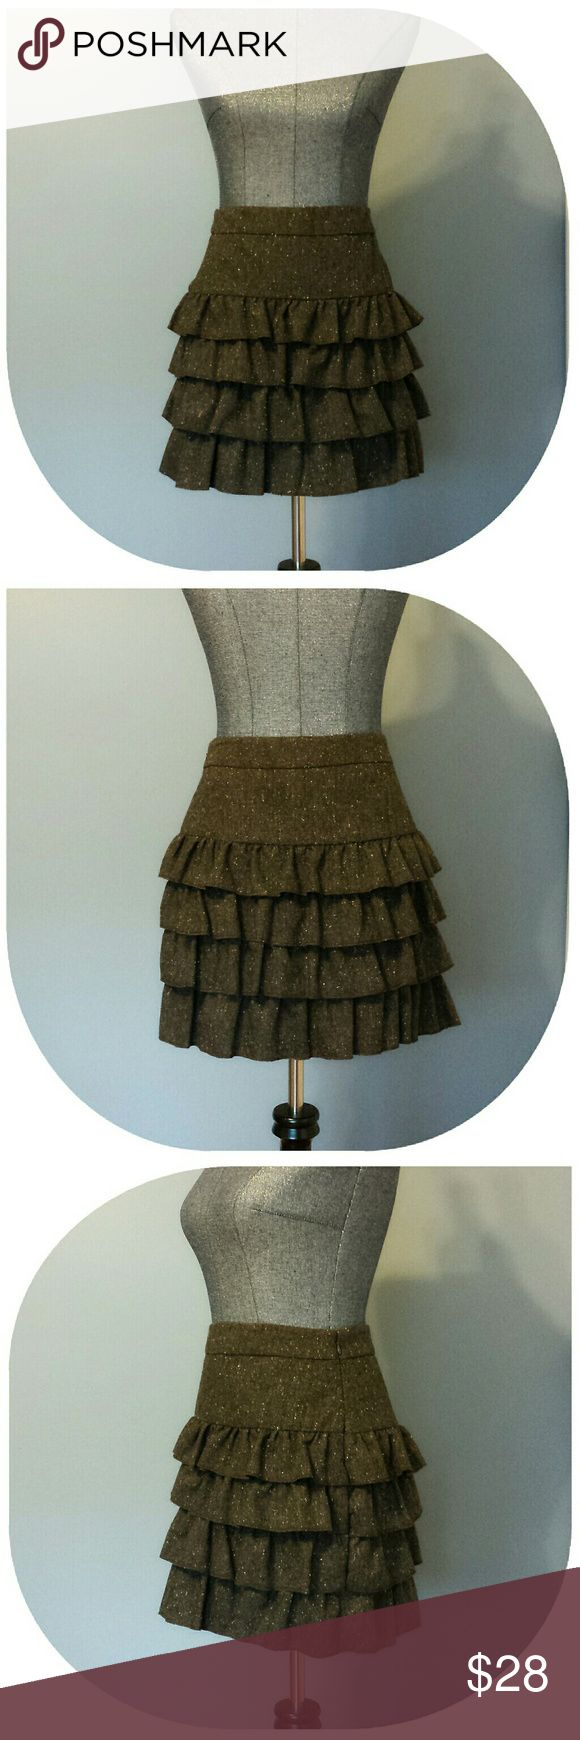 {Anne Taylor Loft} Brown Layered Skirt NEW WITH TAGS!  Great quality skirt by Anne Taylor Loft.  Four layers of beauty with a zipper side closure and hooked fastener.  Lined. Anne Taylor Loft Skirts